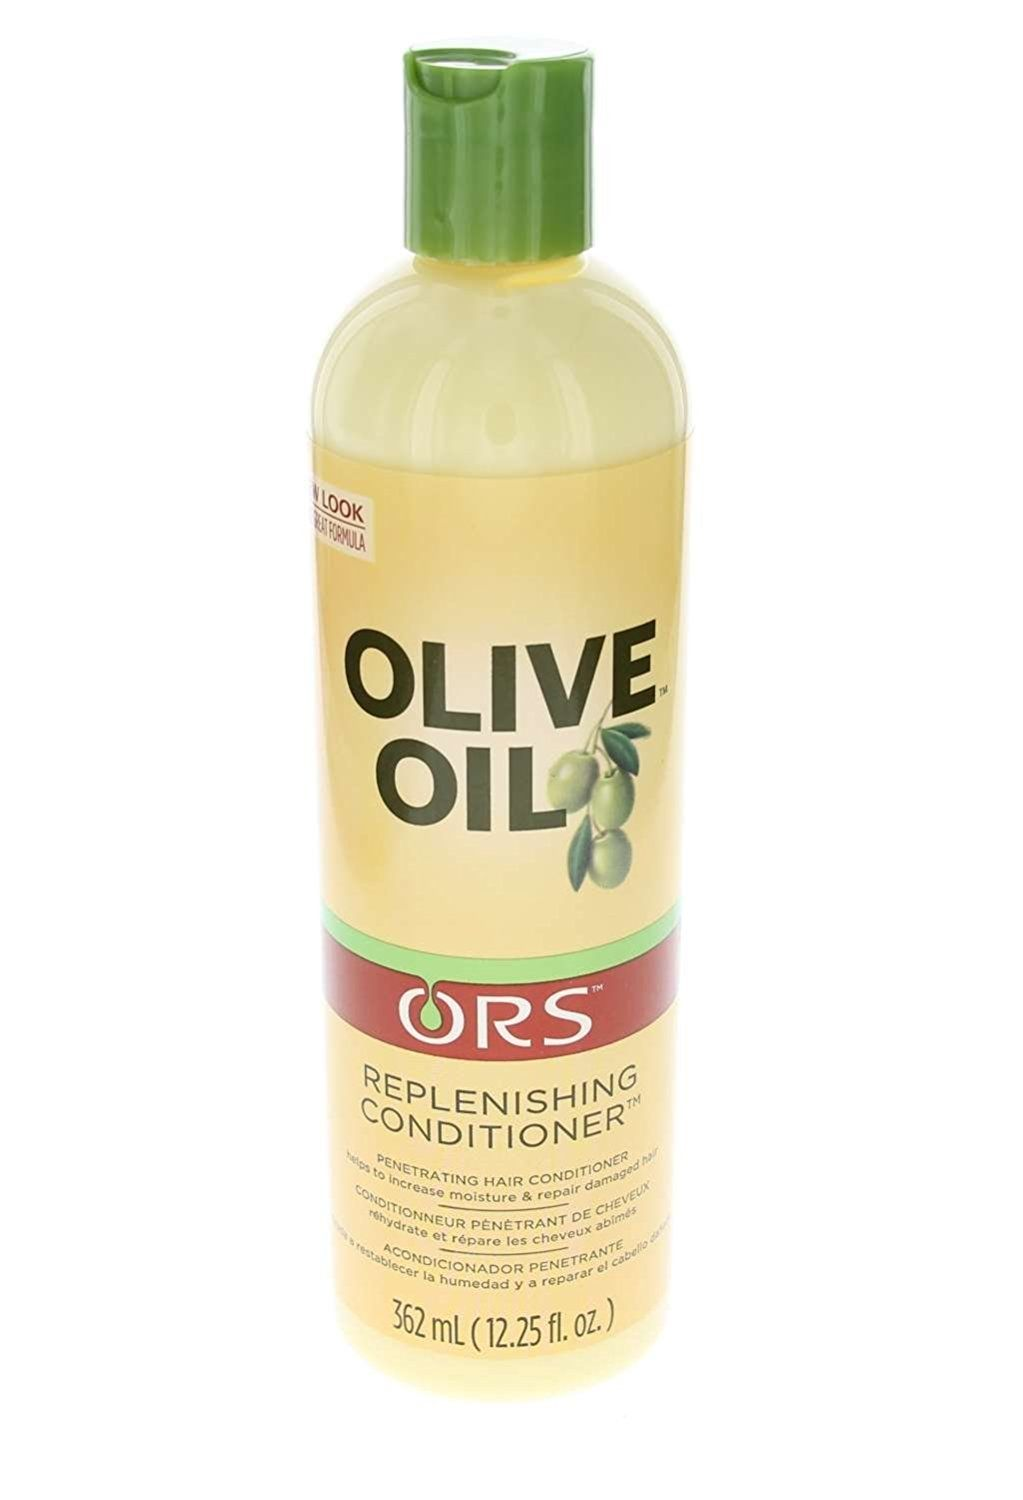 Olive oil is one of the best oils for curly hair and